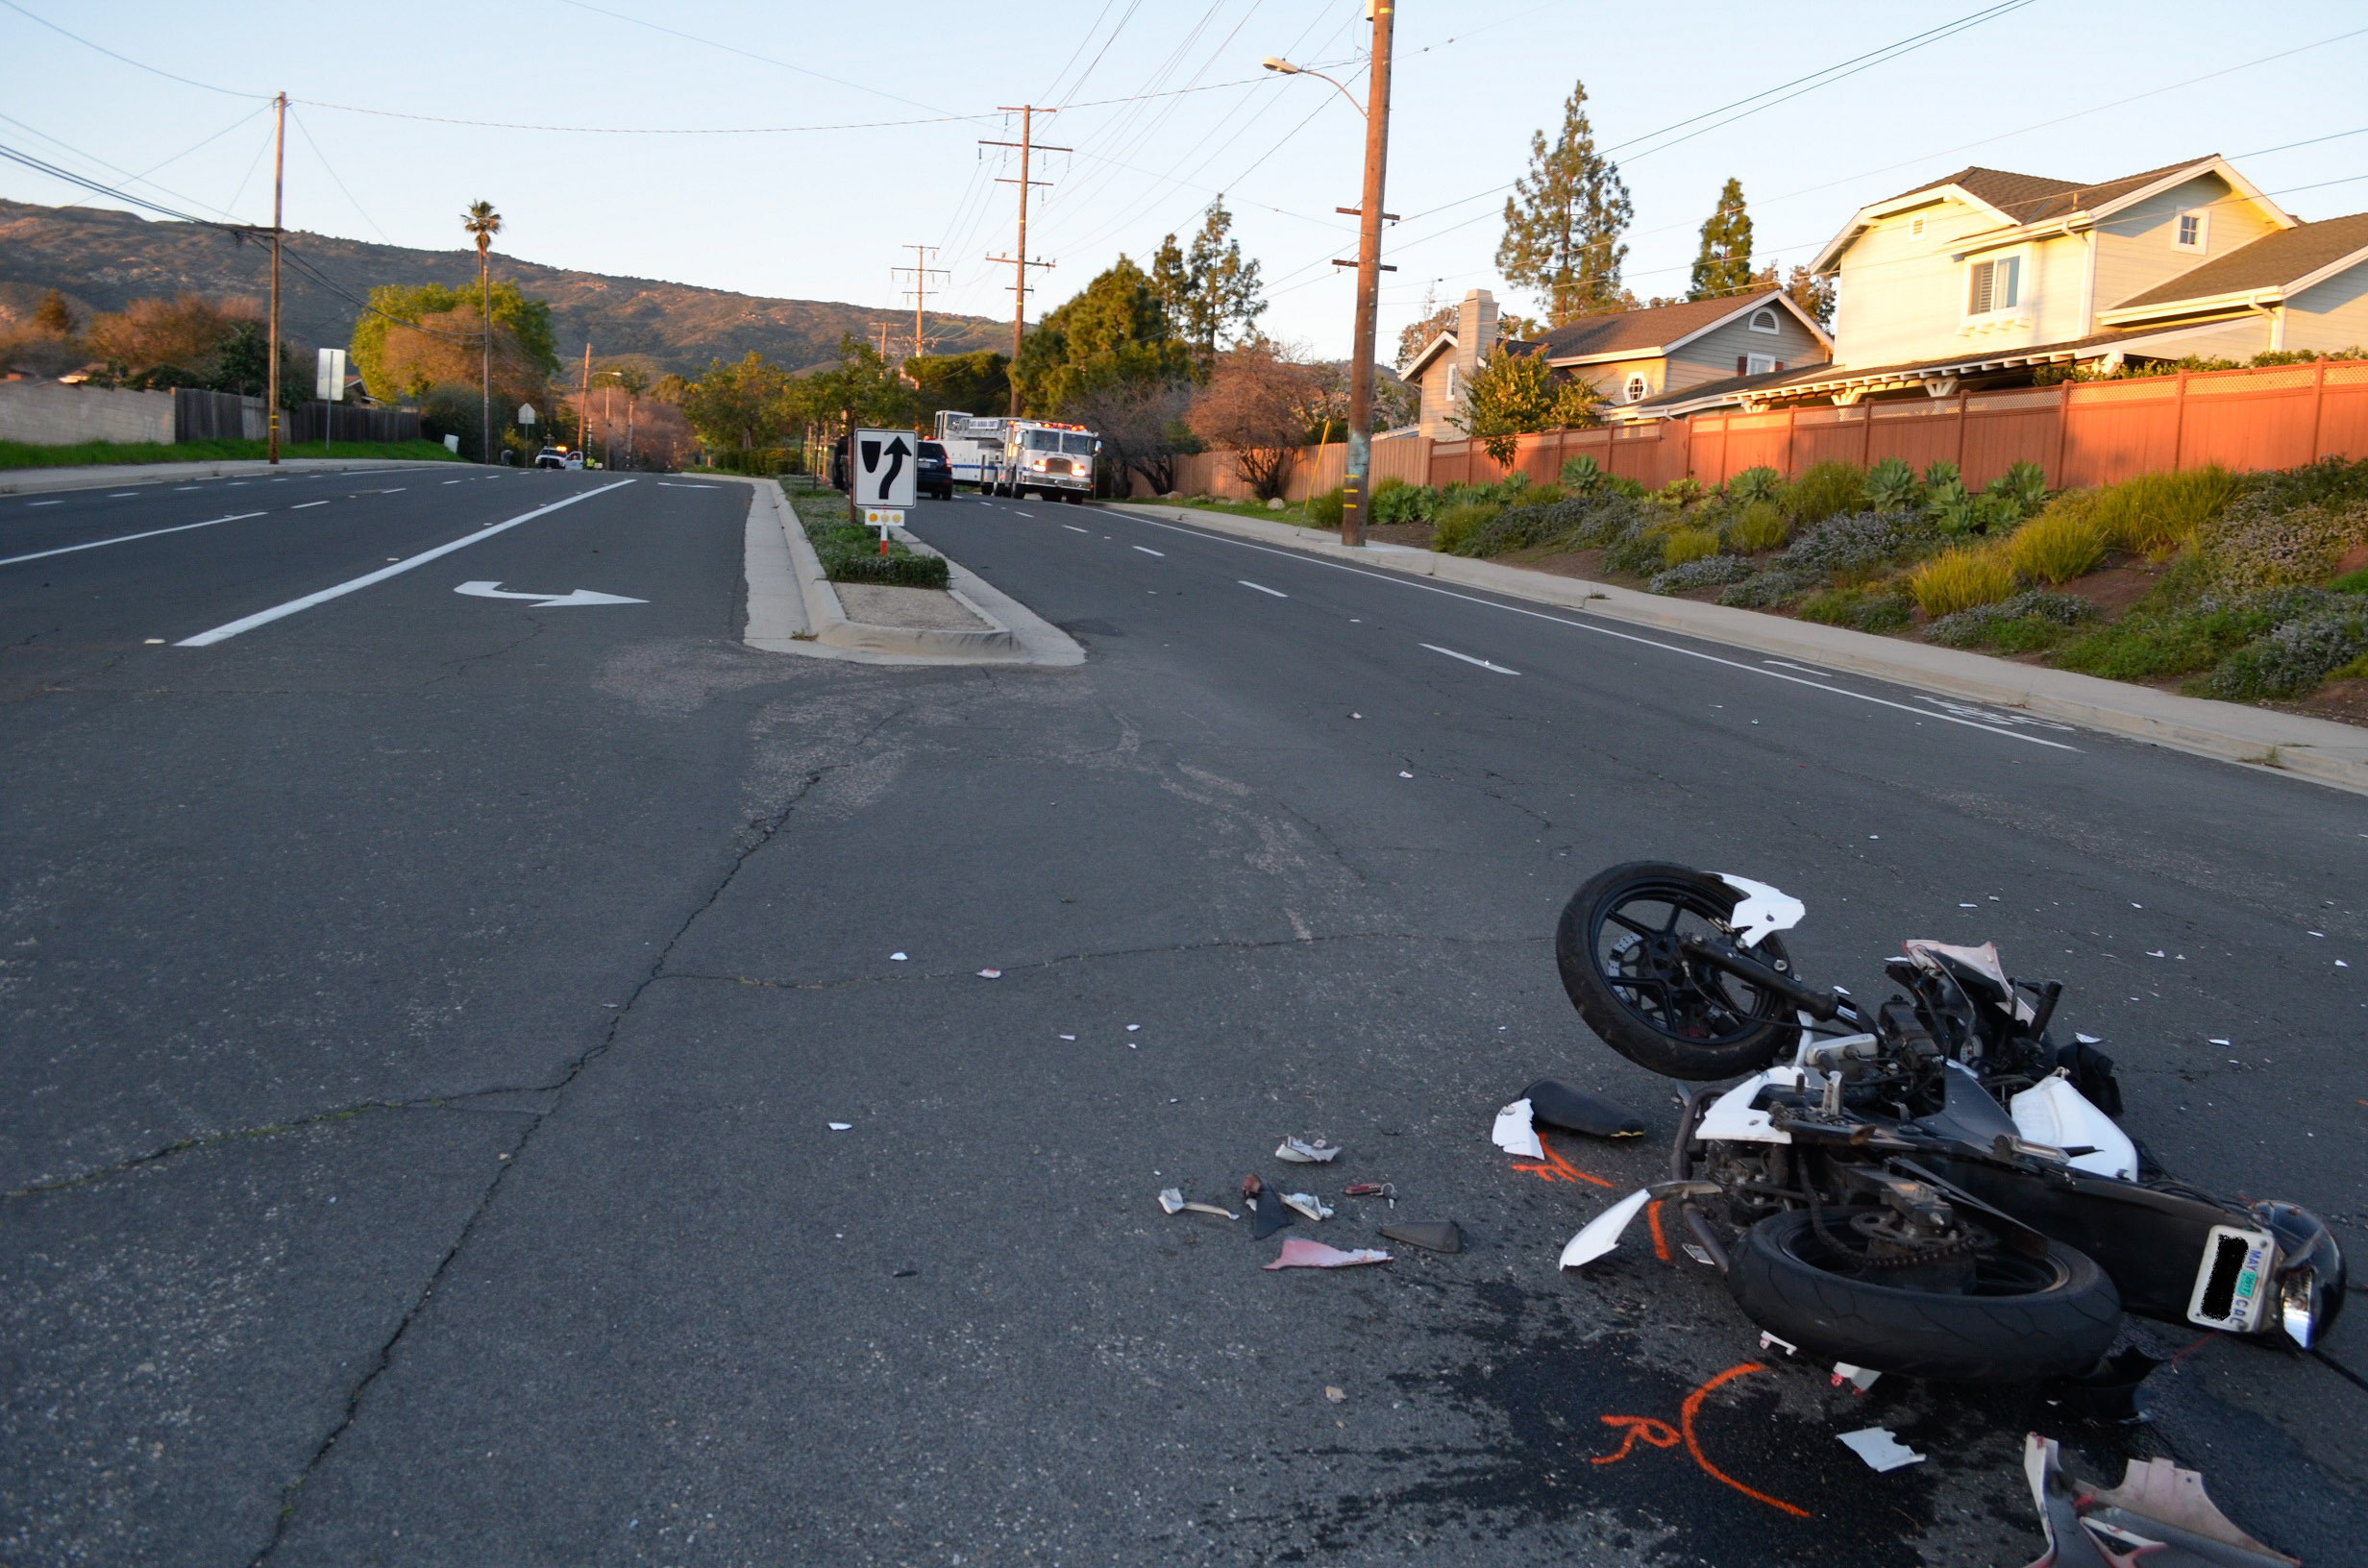 Man Killed in Motorcycle Accident - The Santa Barbara Independent